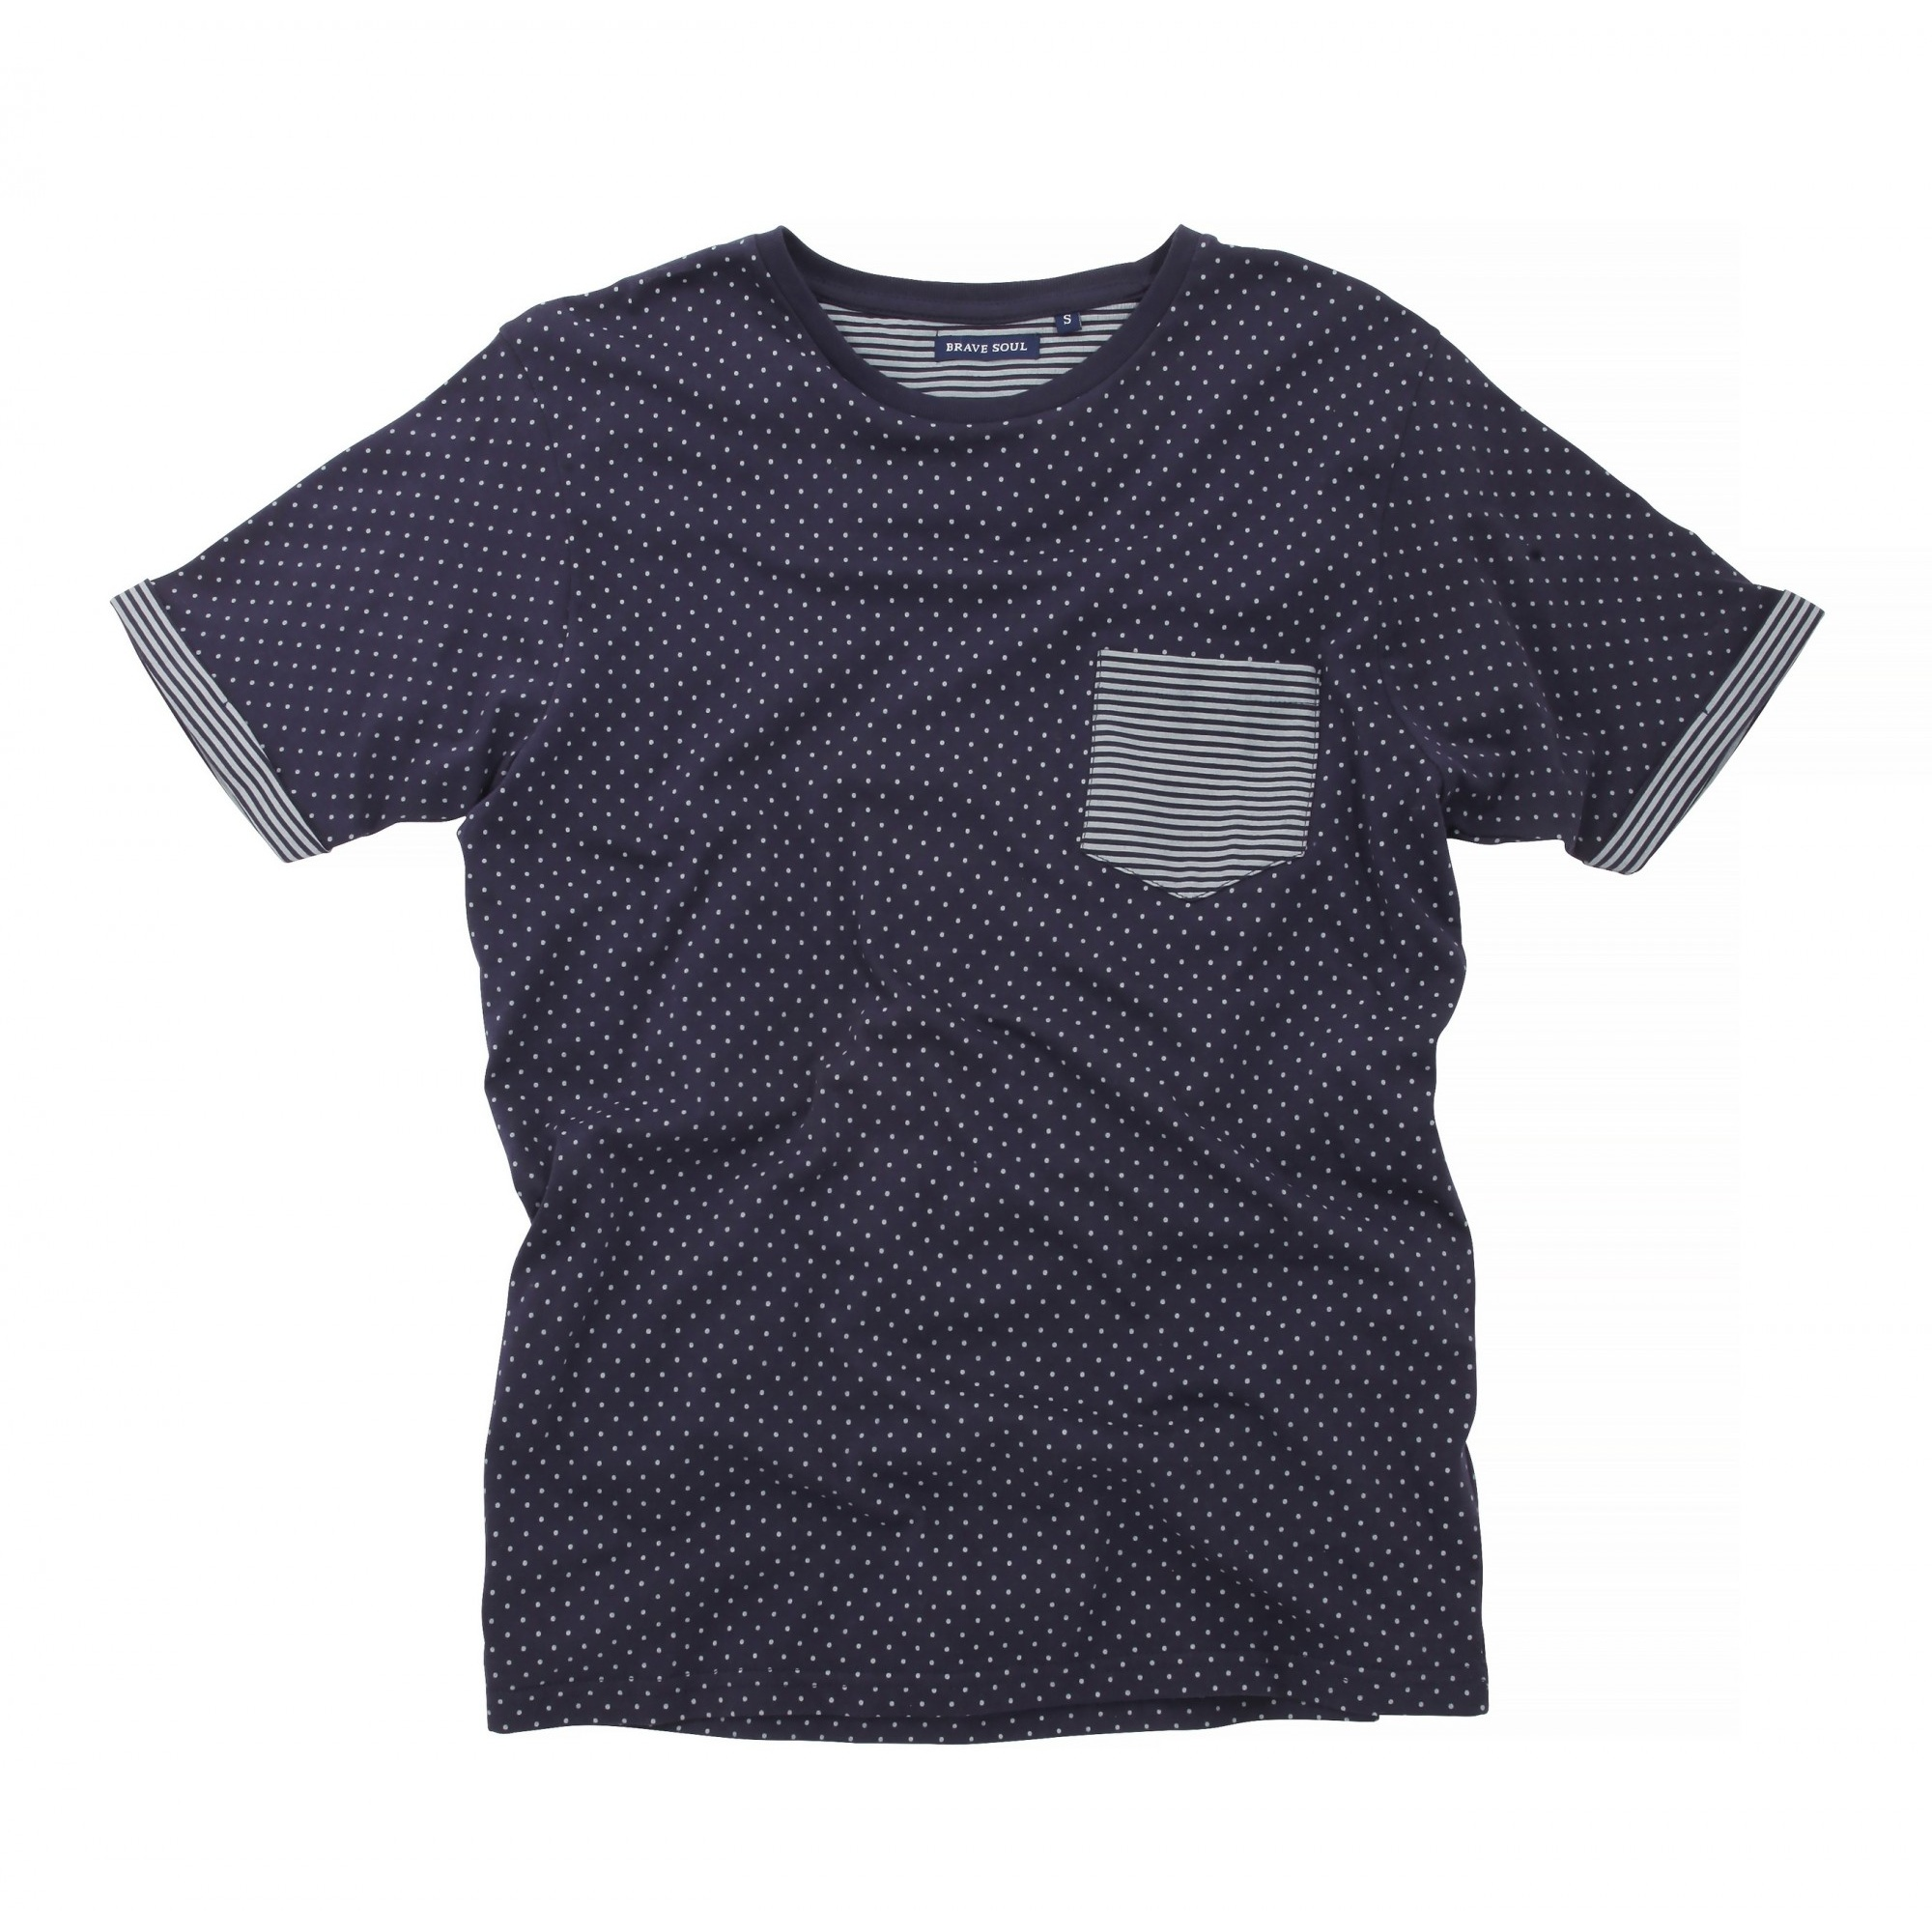 Galaxy by Harvic's Short Sleeve Polka Dot Dress Shirt is made up of a special contemporary knit and woven yarn dye blend that maintains the color richness and fabric comfort without compromising the quality or integrity.